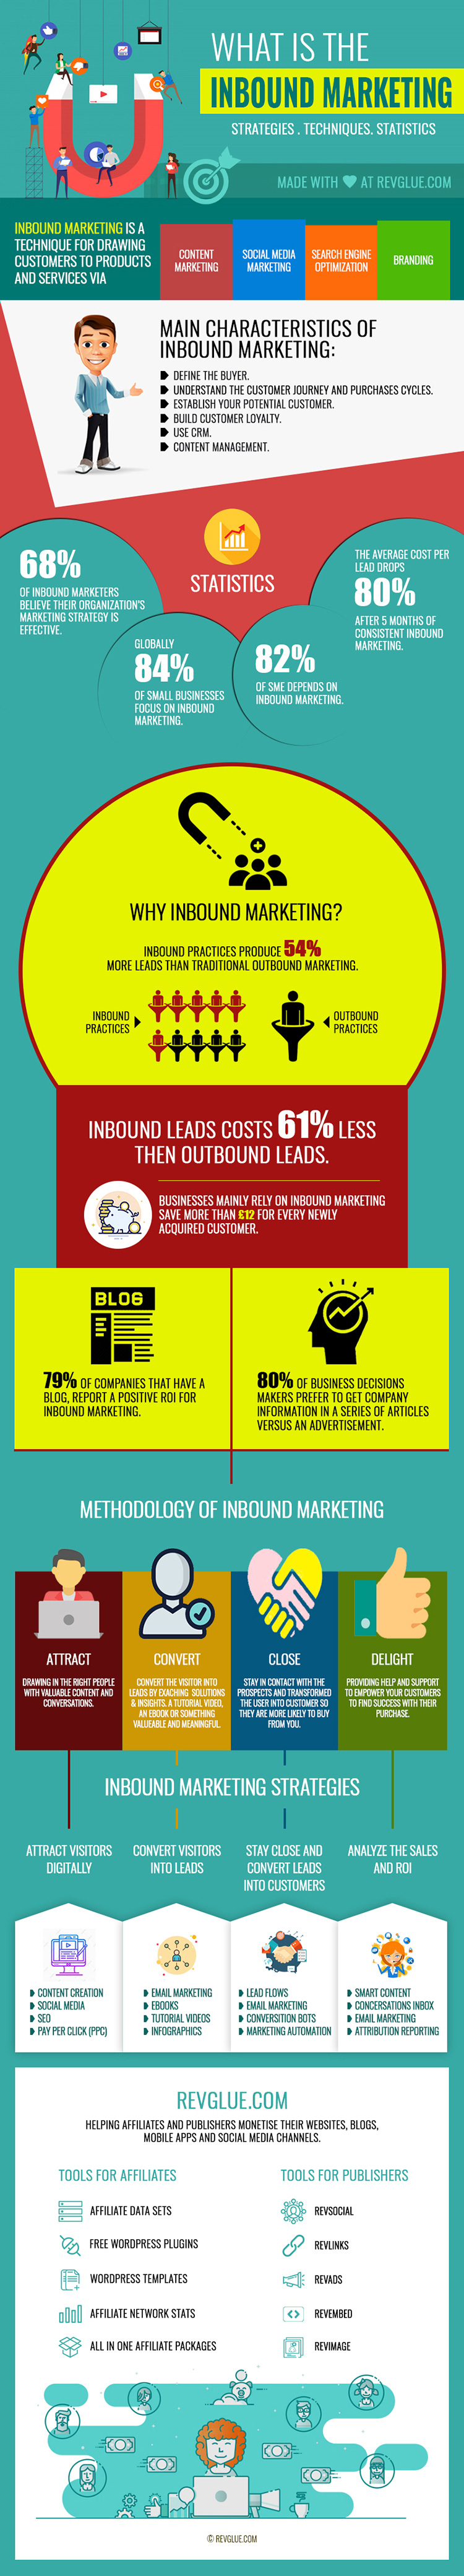 Learn Inbound Marketing in 2020 Infographic